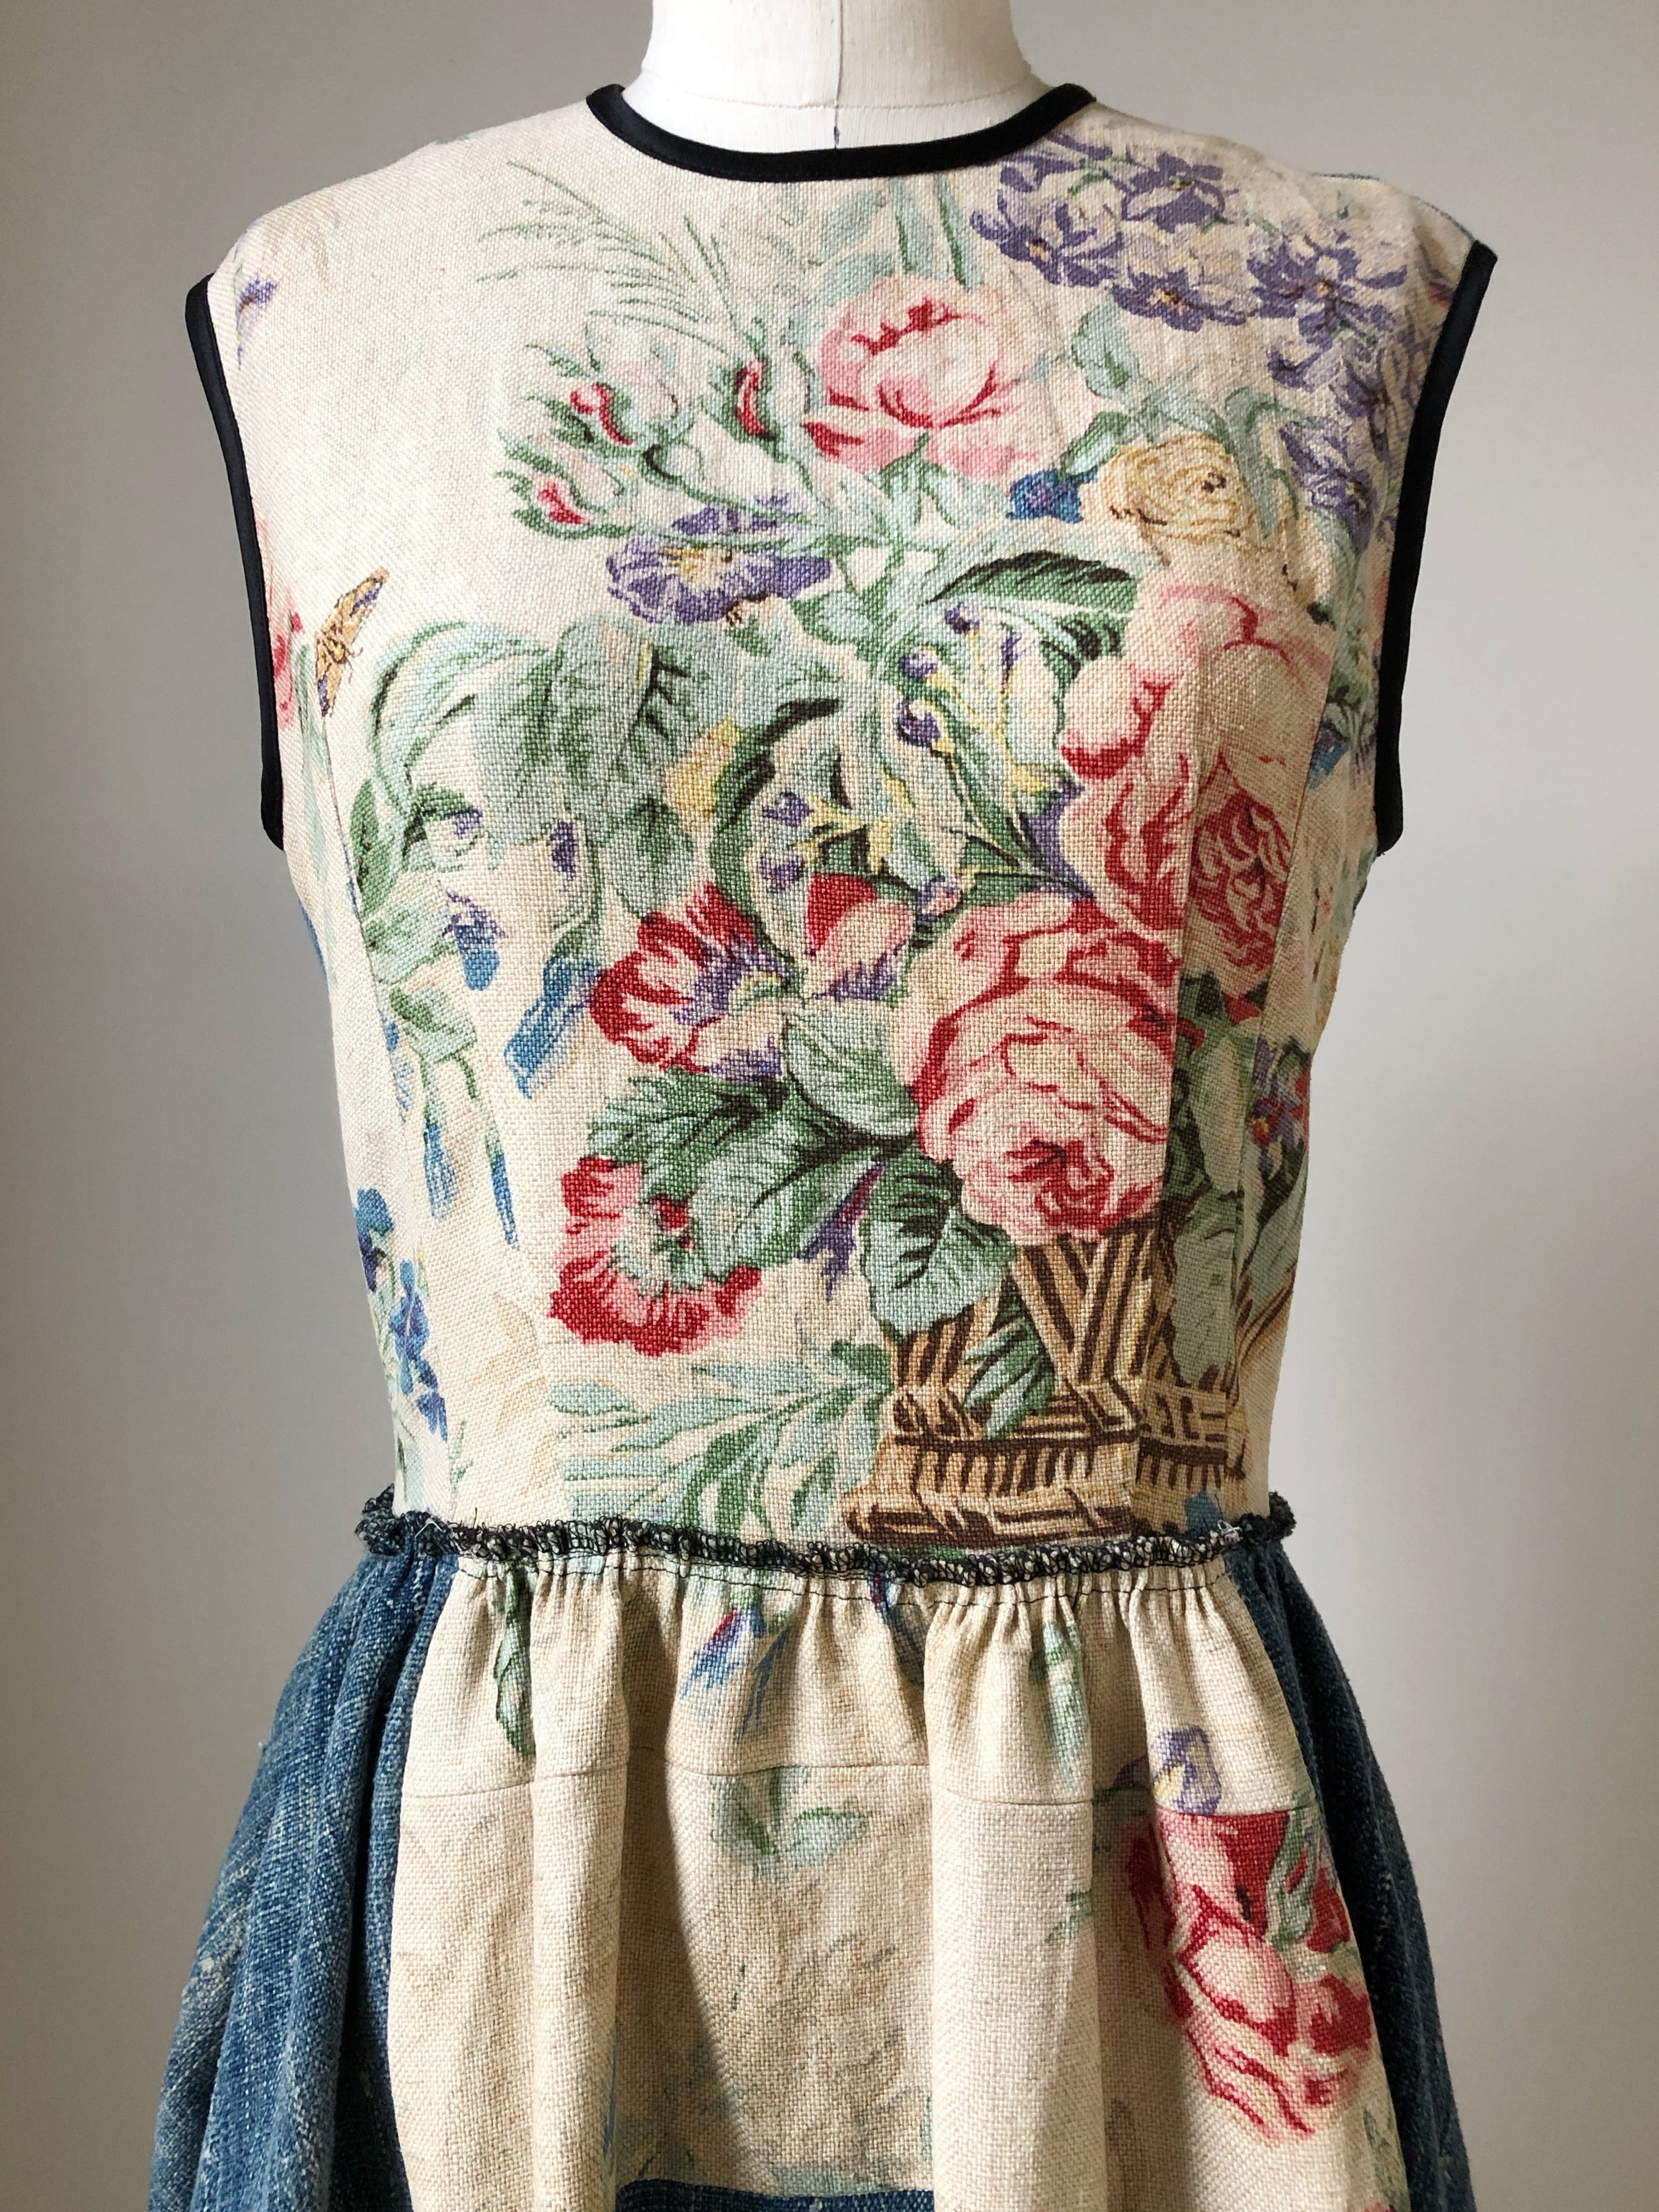 faded patched floral with indigo